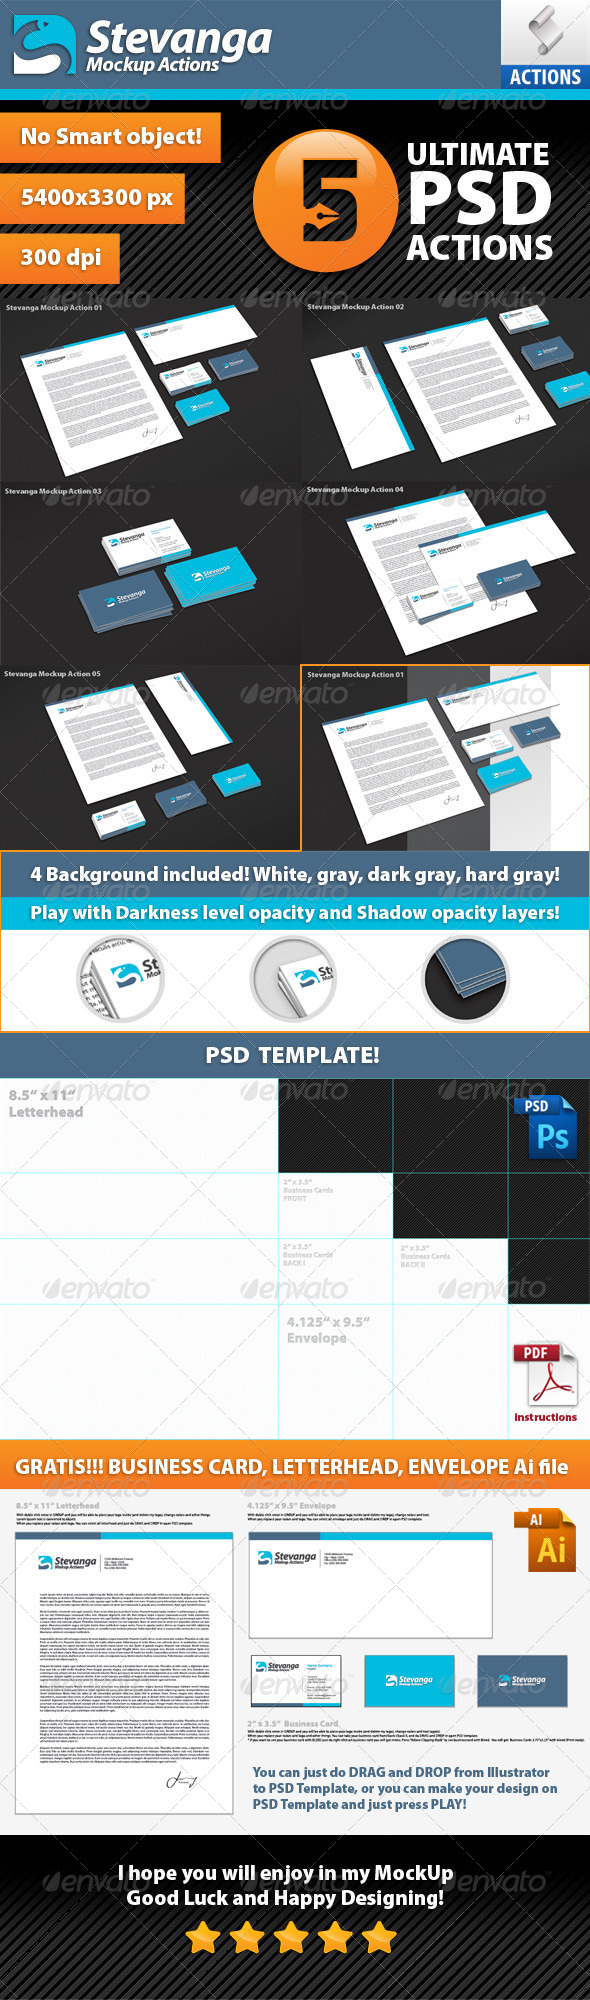 GraphicRiver Stevanga Mockup Actions 7718338